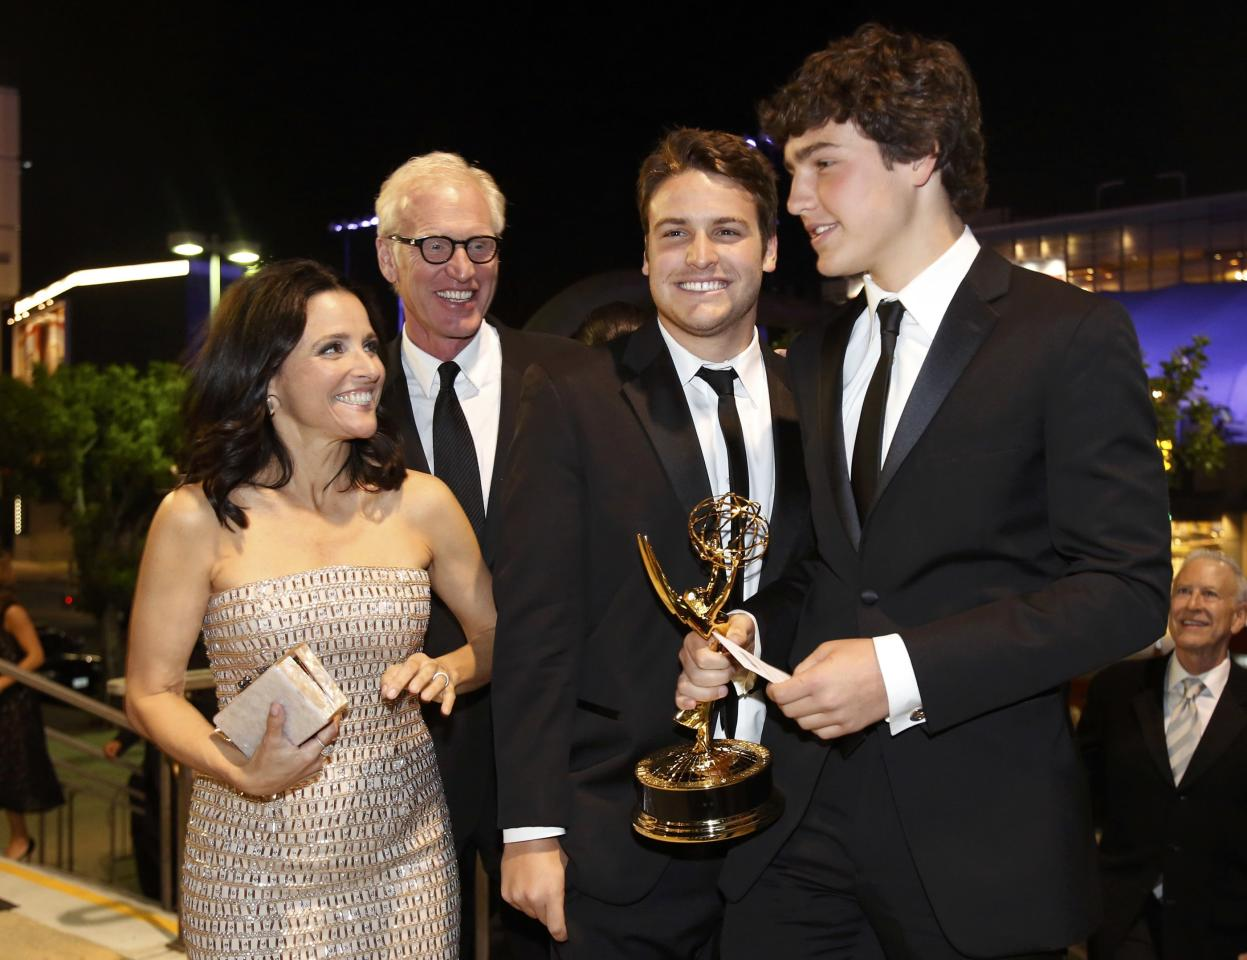 Actress Julia Louis-Dreyfus, with her husband, Brad Hall, and children Henry Hall (C) and Charlie Hall, arrive at the Governors Ball for the 65th Primetime Emmy Awards in Los Angeles September 22, 2013. REUTERS/Mario Anzuoni (UNITED STATES - Tags: ENTERTAINMENT) (EMMYS-BALL)